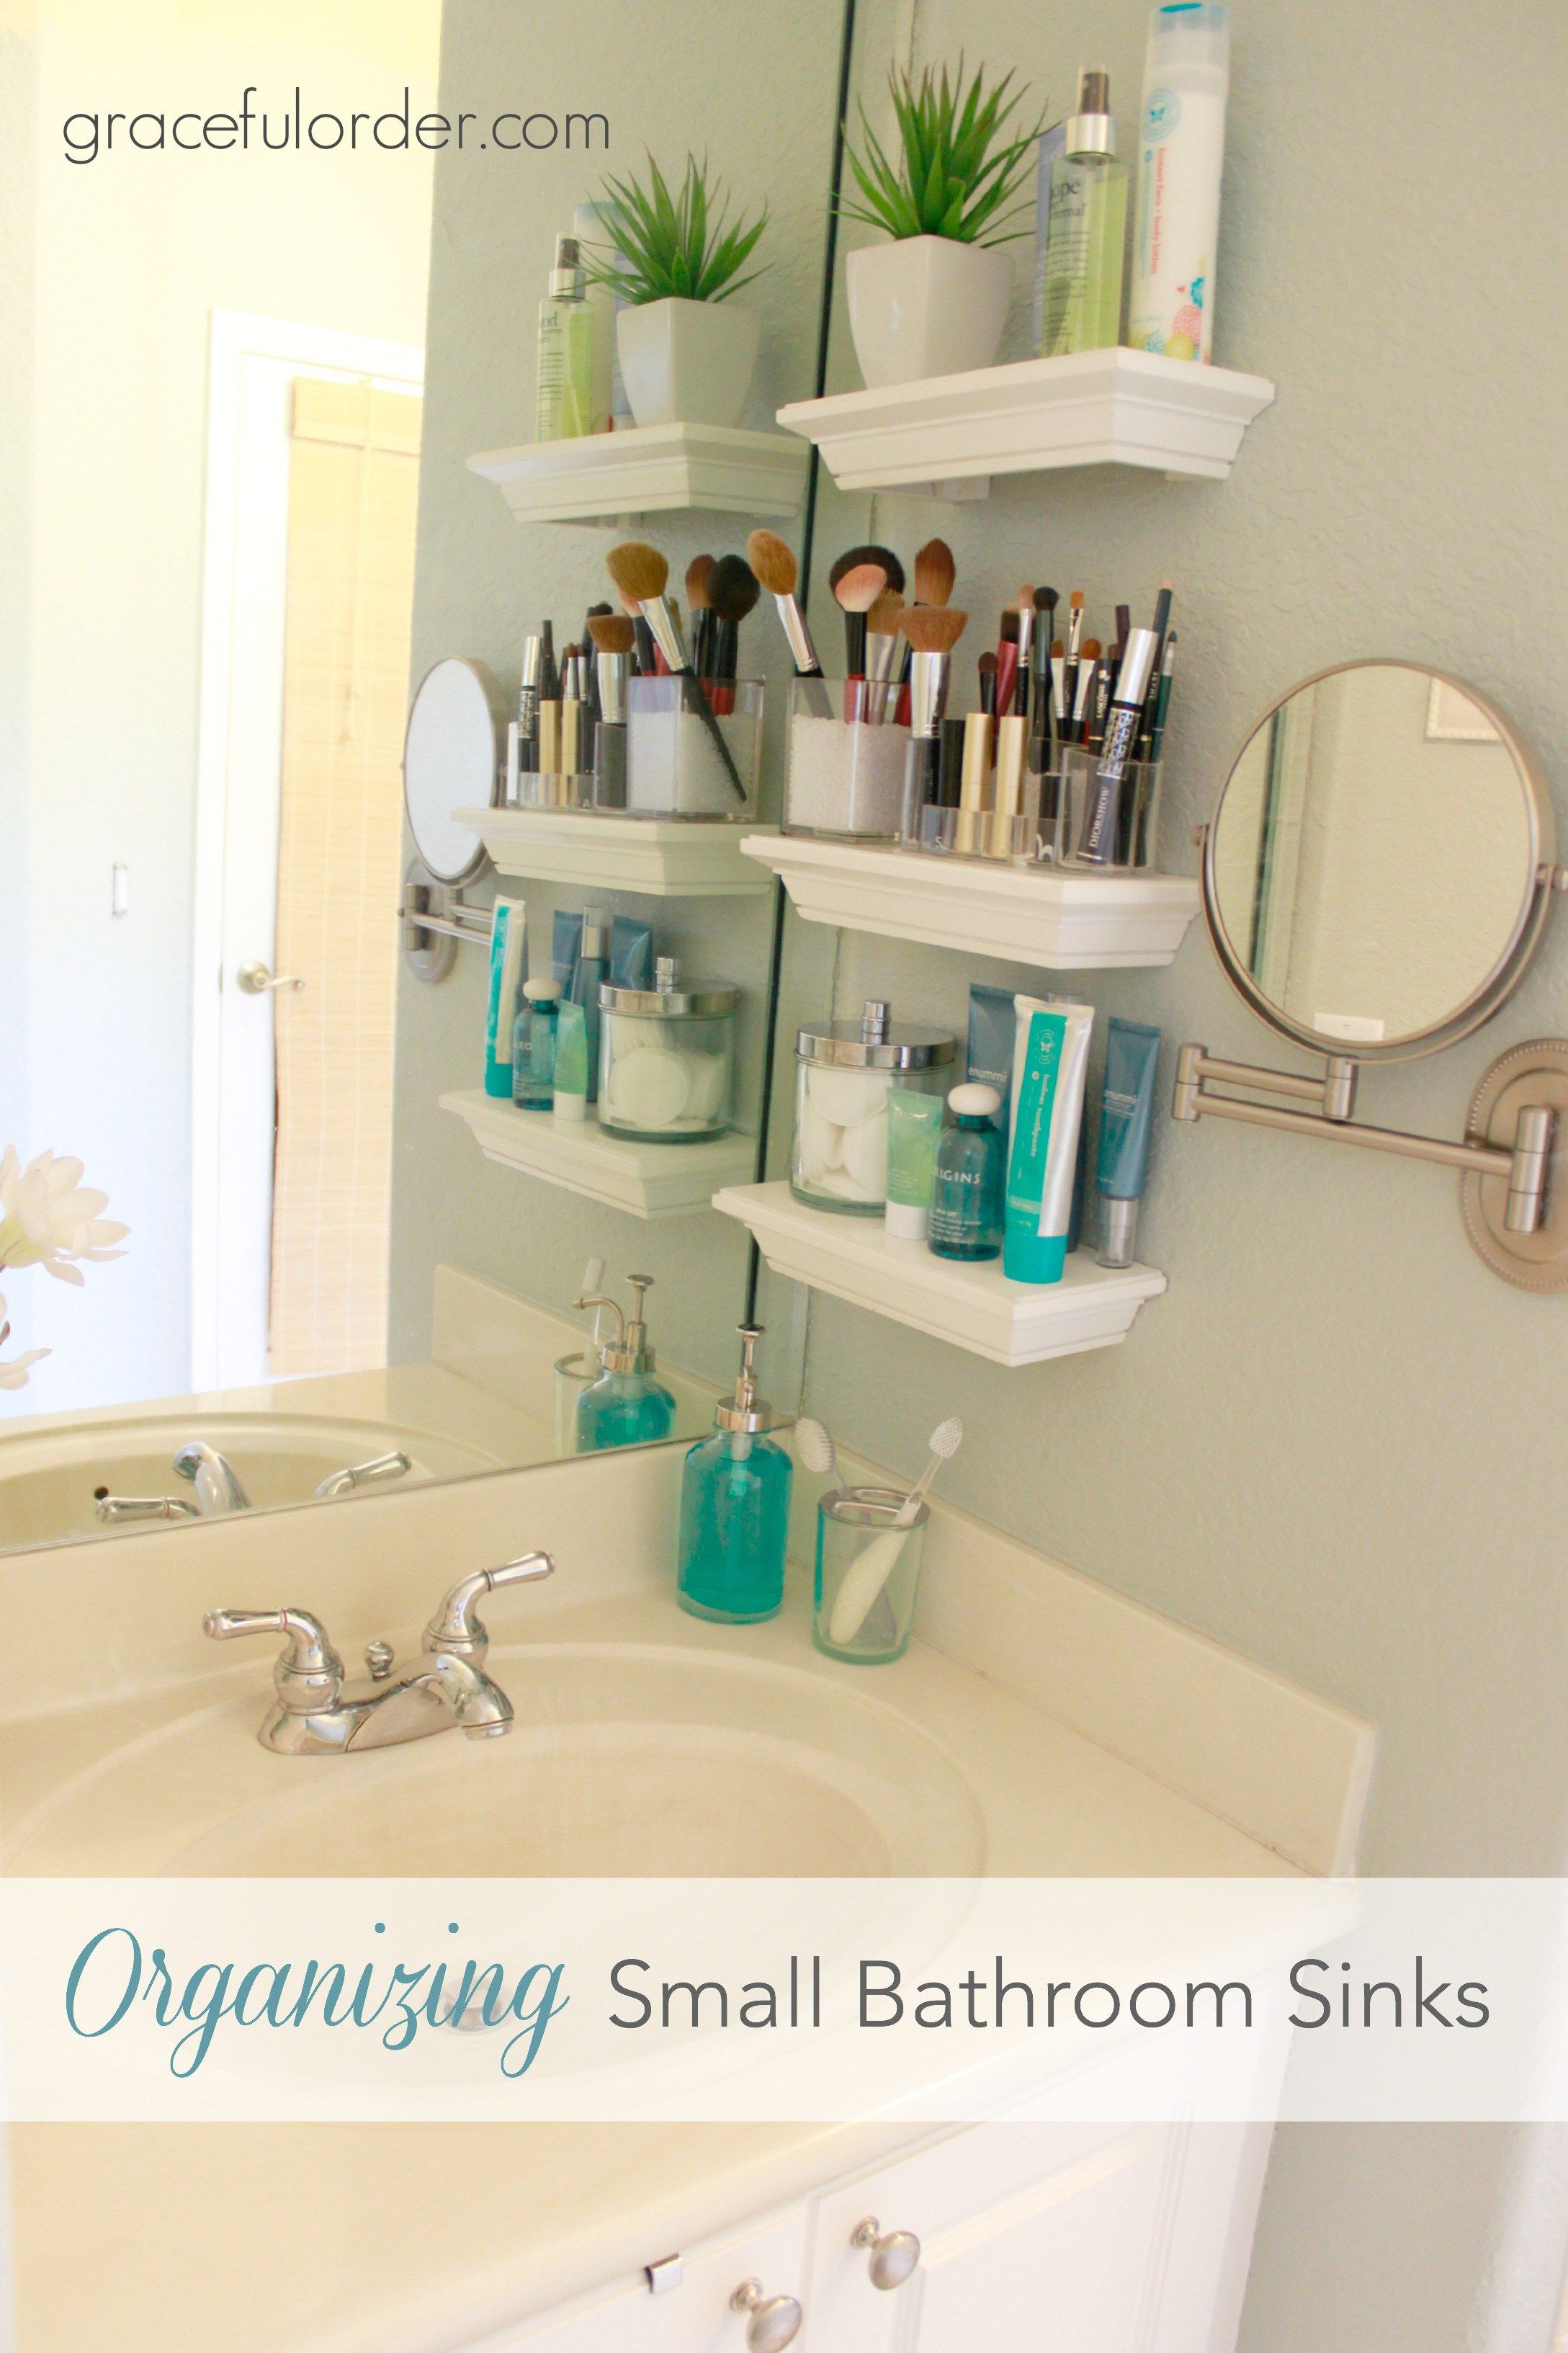 Small Floating Shelves Next To The Sink To Get Clutter Off The Sink But Keep It Handy Should Do Small Bathroom Sinks Bathroom Storage Solutions Bathroom Decor